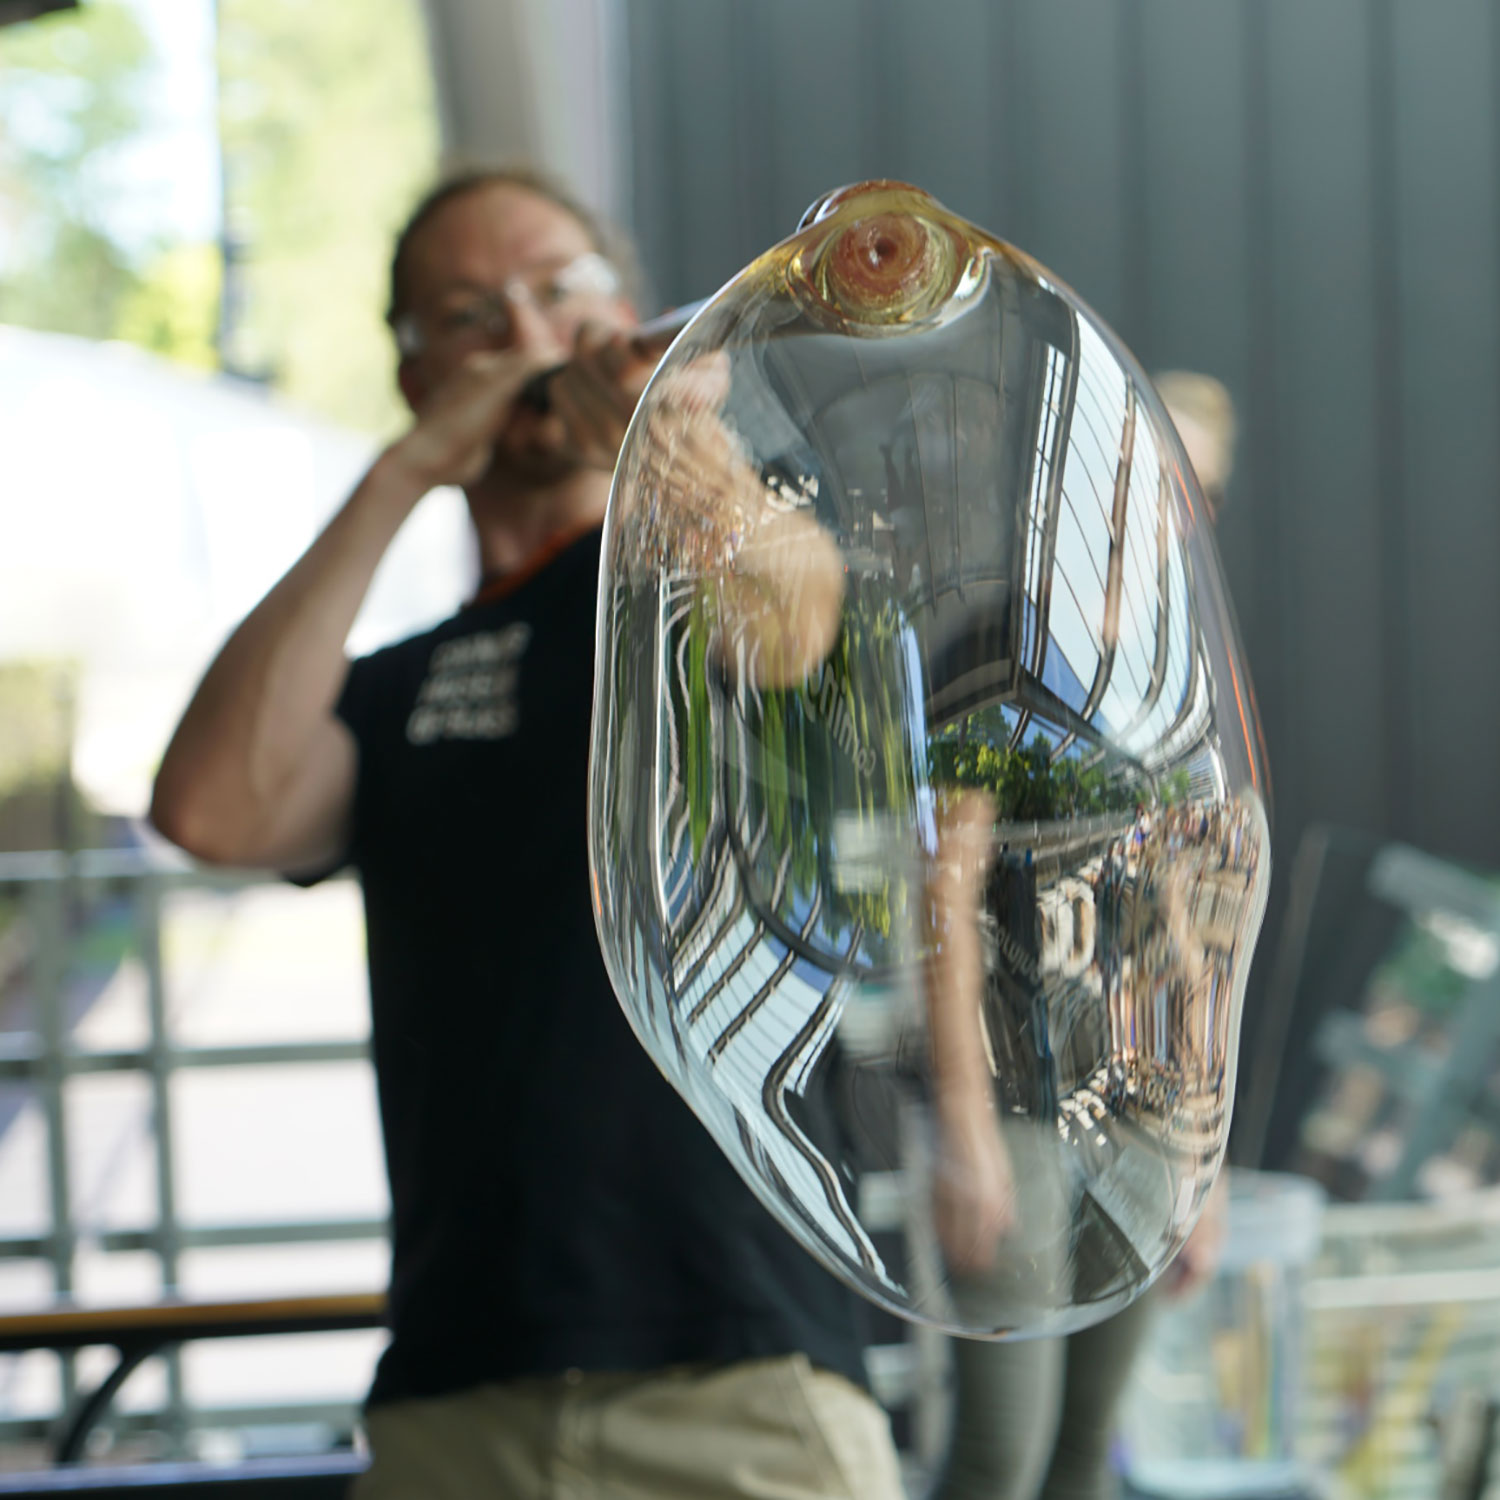 A man blows a large bubble of clear glass through a blowpipe.